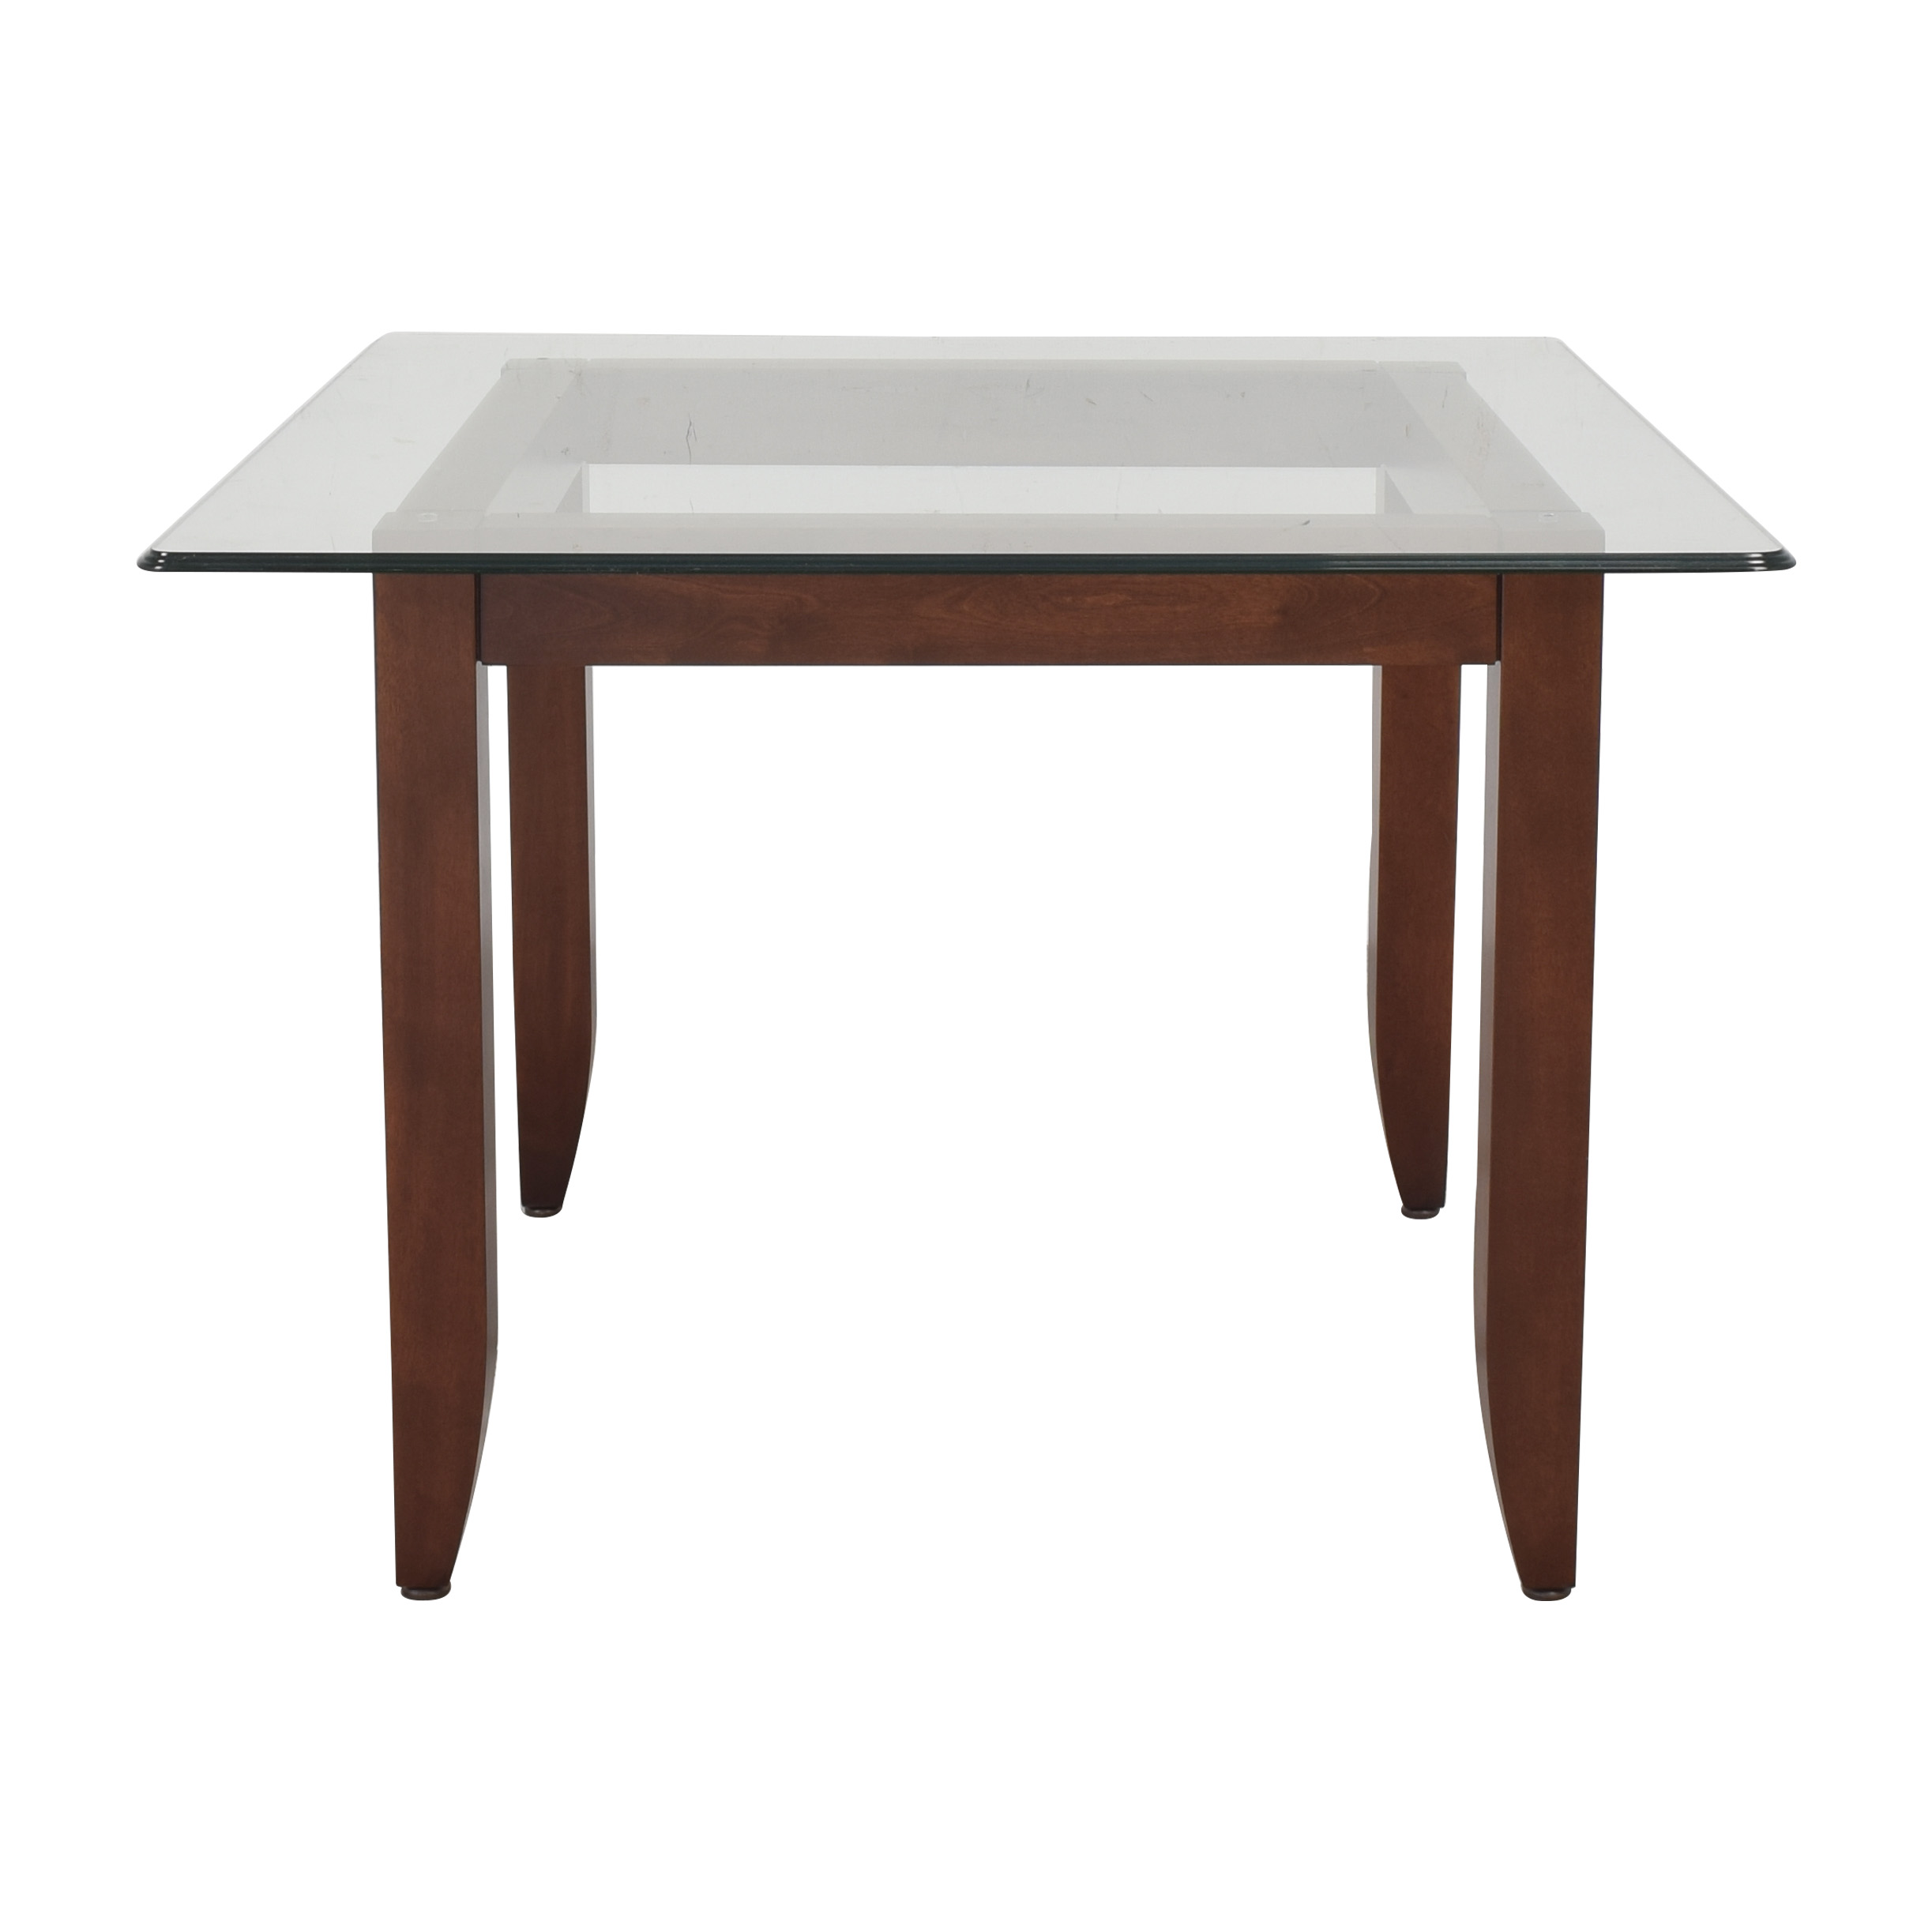 Thomasville Thomasville Square Dining Table on sale